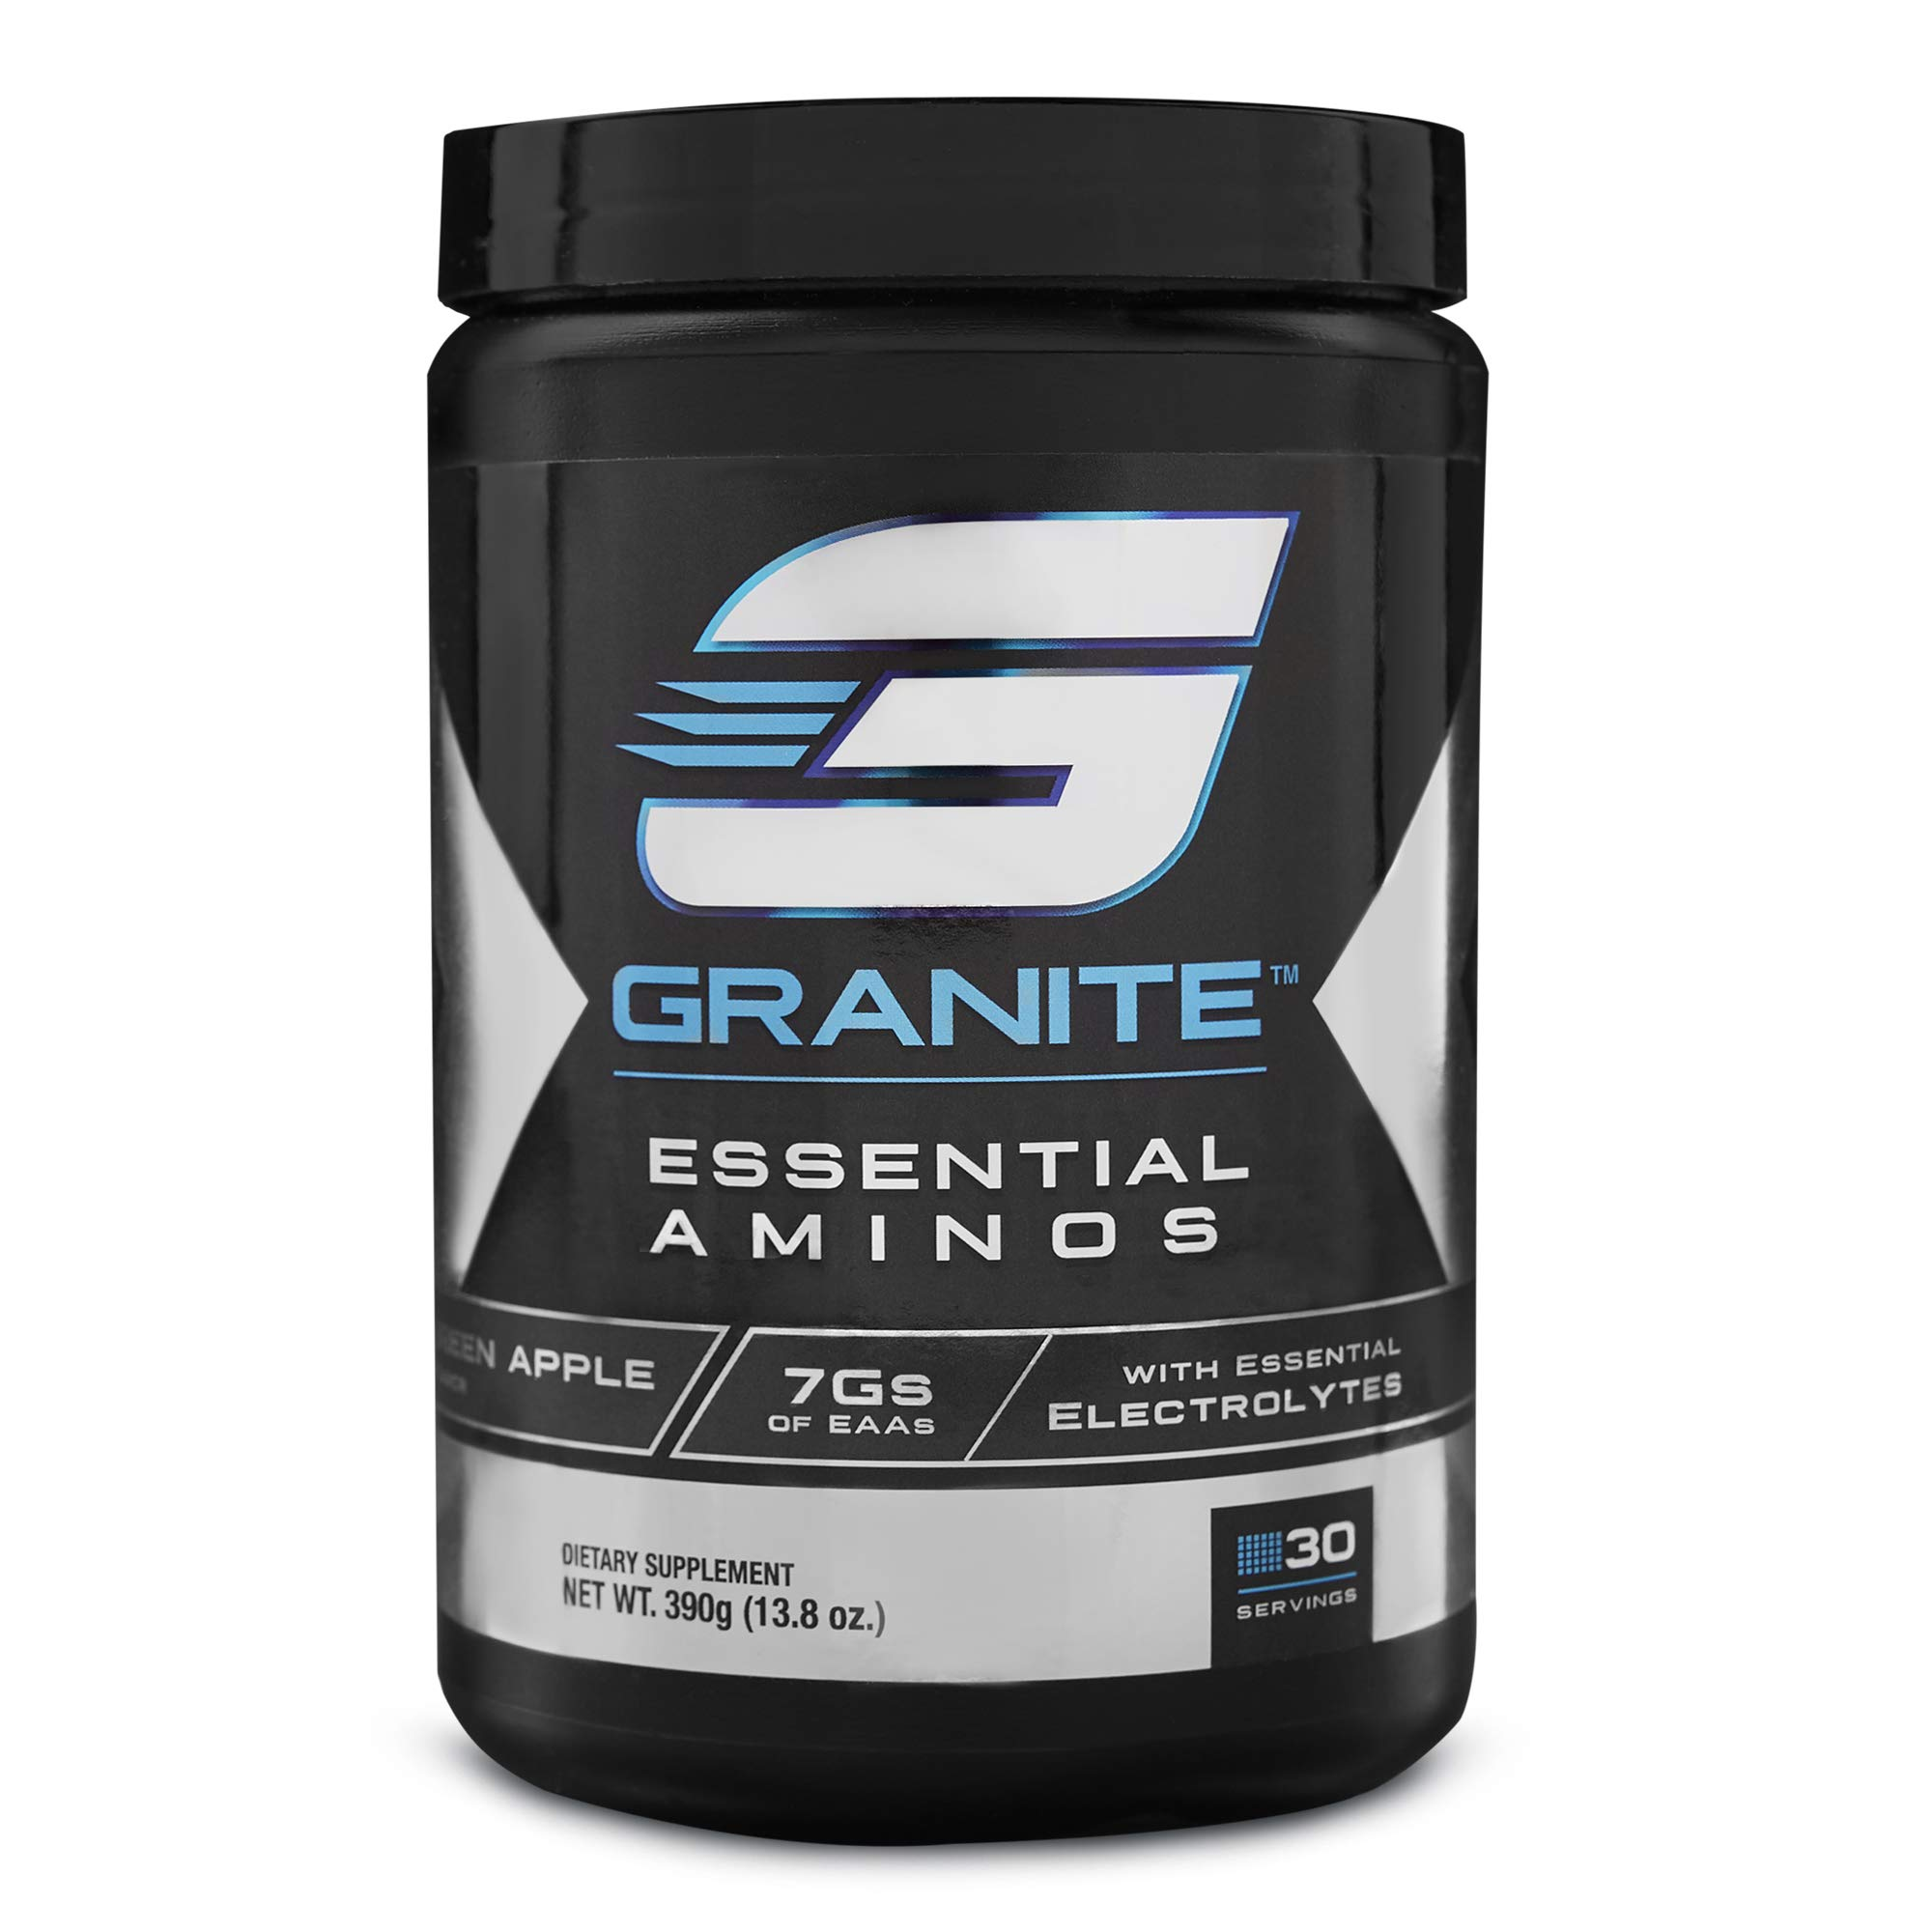 EAA Powder by Granite Supplements   30 Servings of Essential Aminos Green Apple to Promote Muscle Growth, Train Harder, and Recover Faster   Includes EAAs, BCAAs, and Electrolytes by Granite Supplements